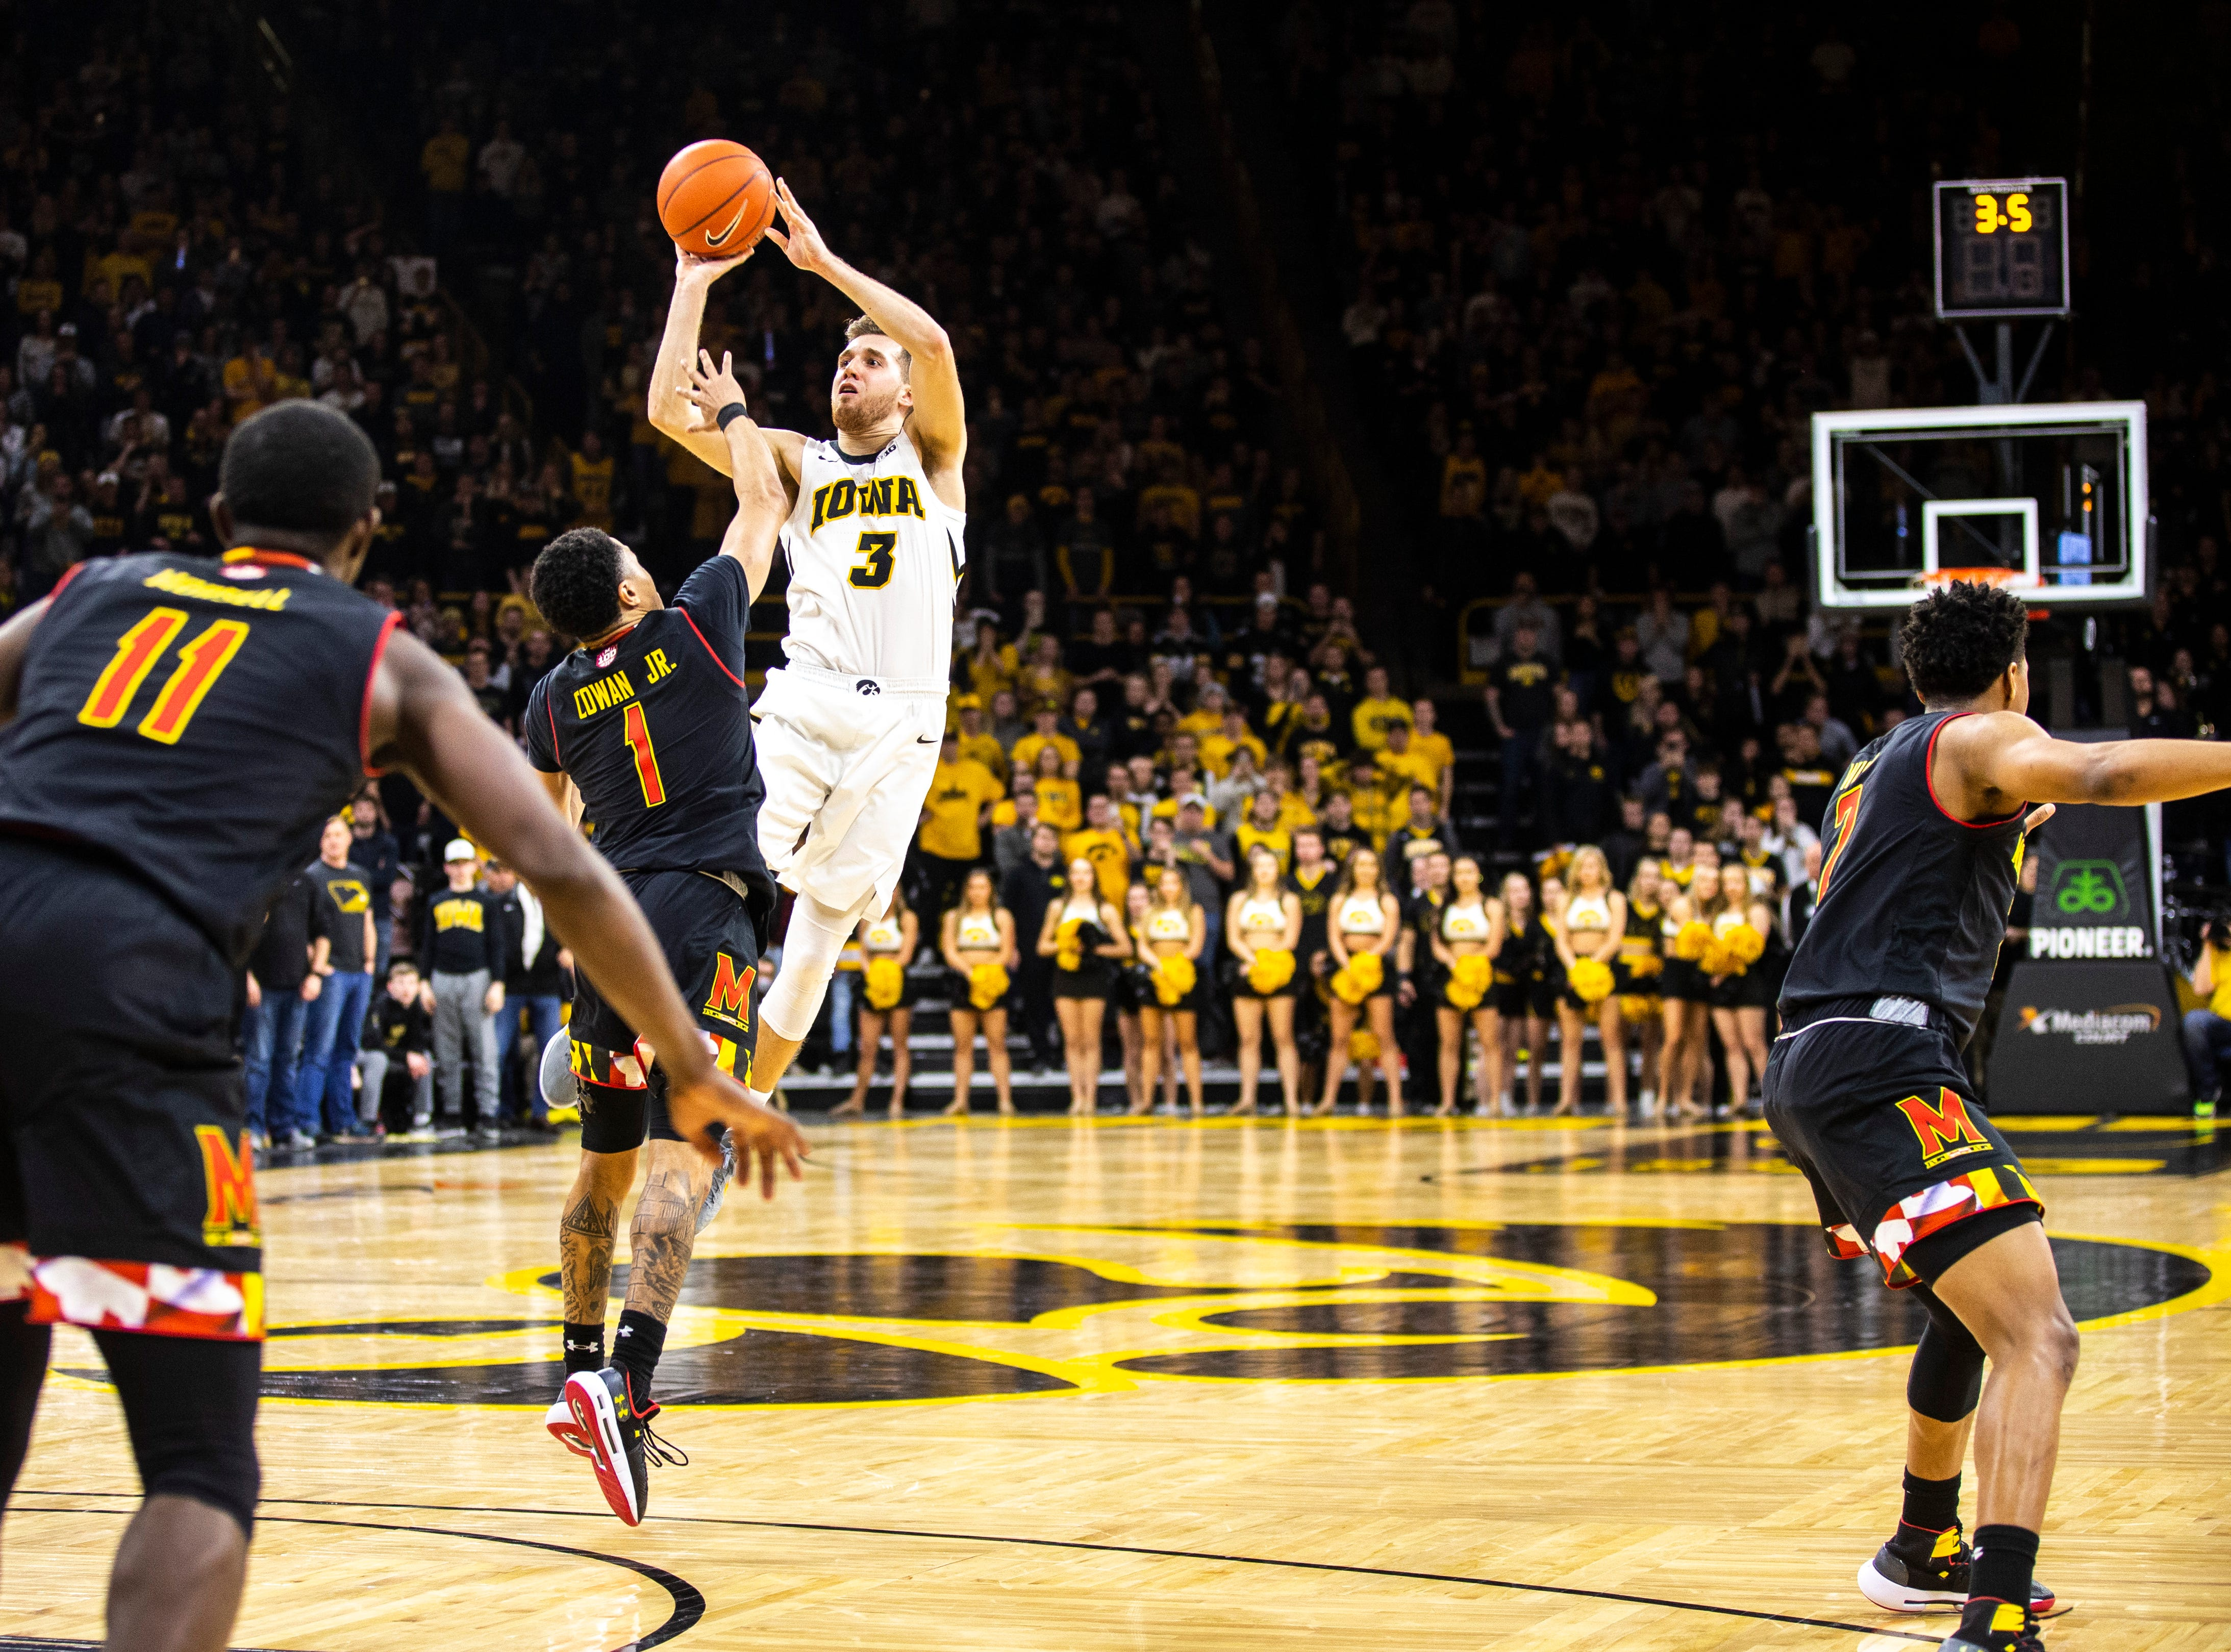 Iowa guard Jordan Bohannon (3) rises to shoot a basket while Maryland guard Anthony Cowan Jr. (1) defends during a NCAA Big Ten Conference men's basketball game on Tuesday, Feb. 19, 2019 at Carver-Hawkeye Arena in Iowa City, Iowa.